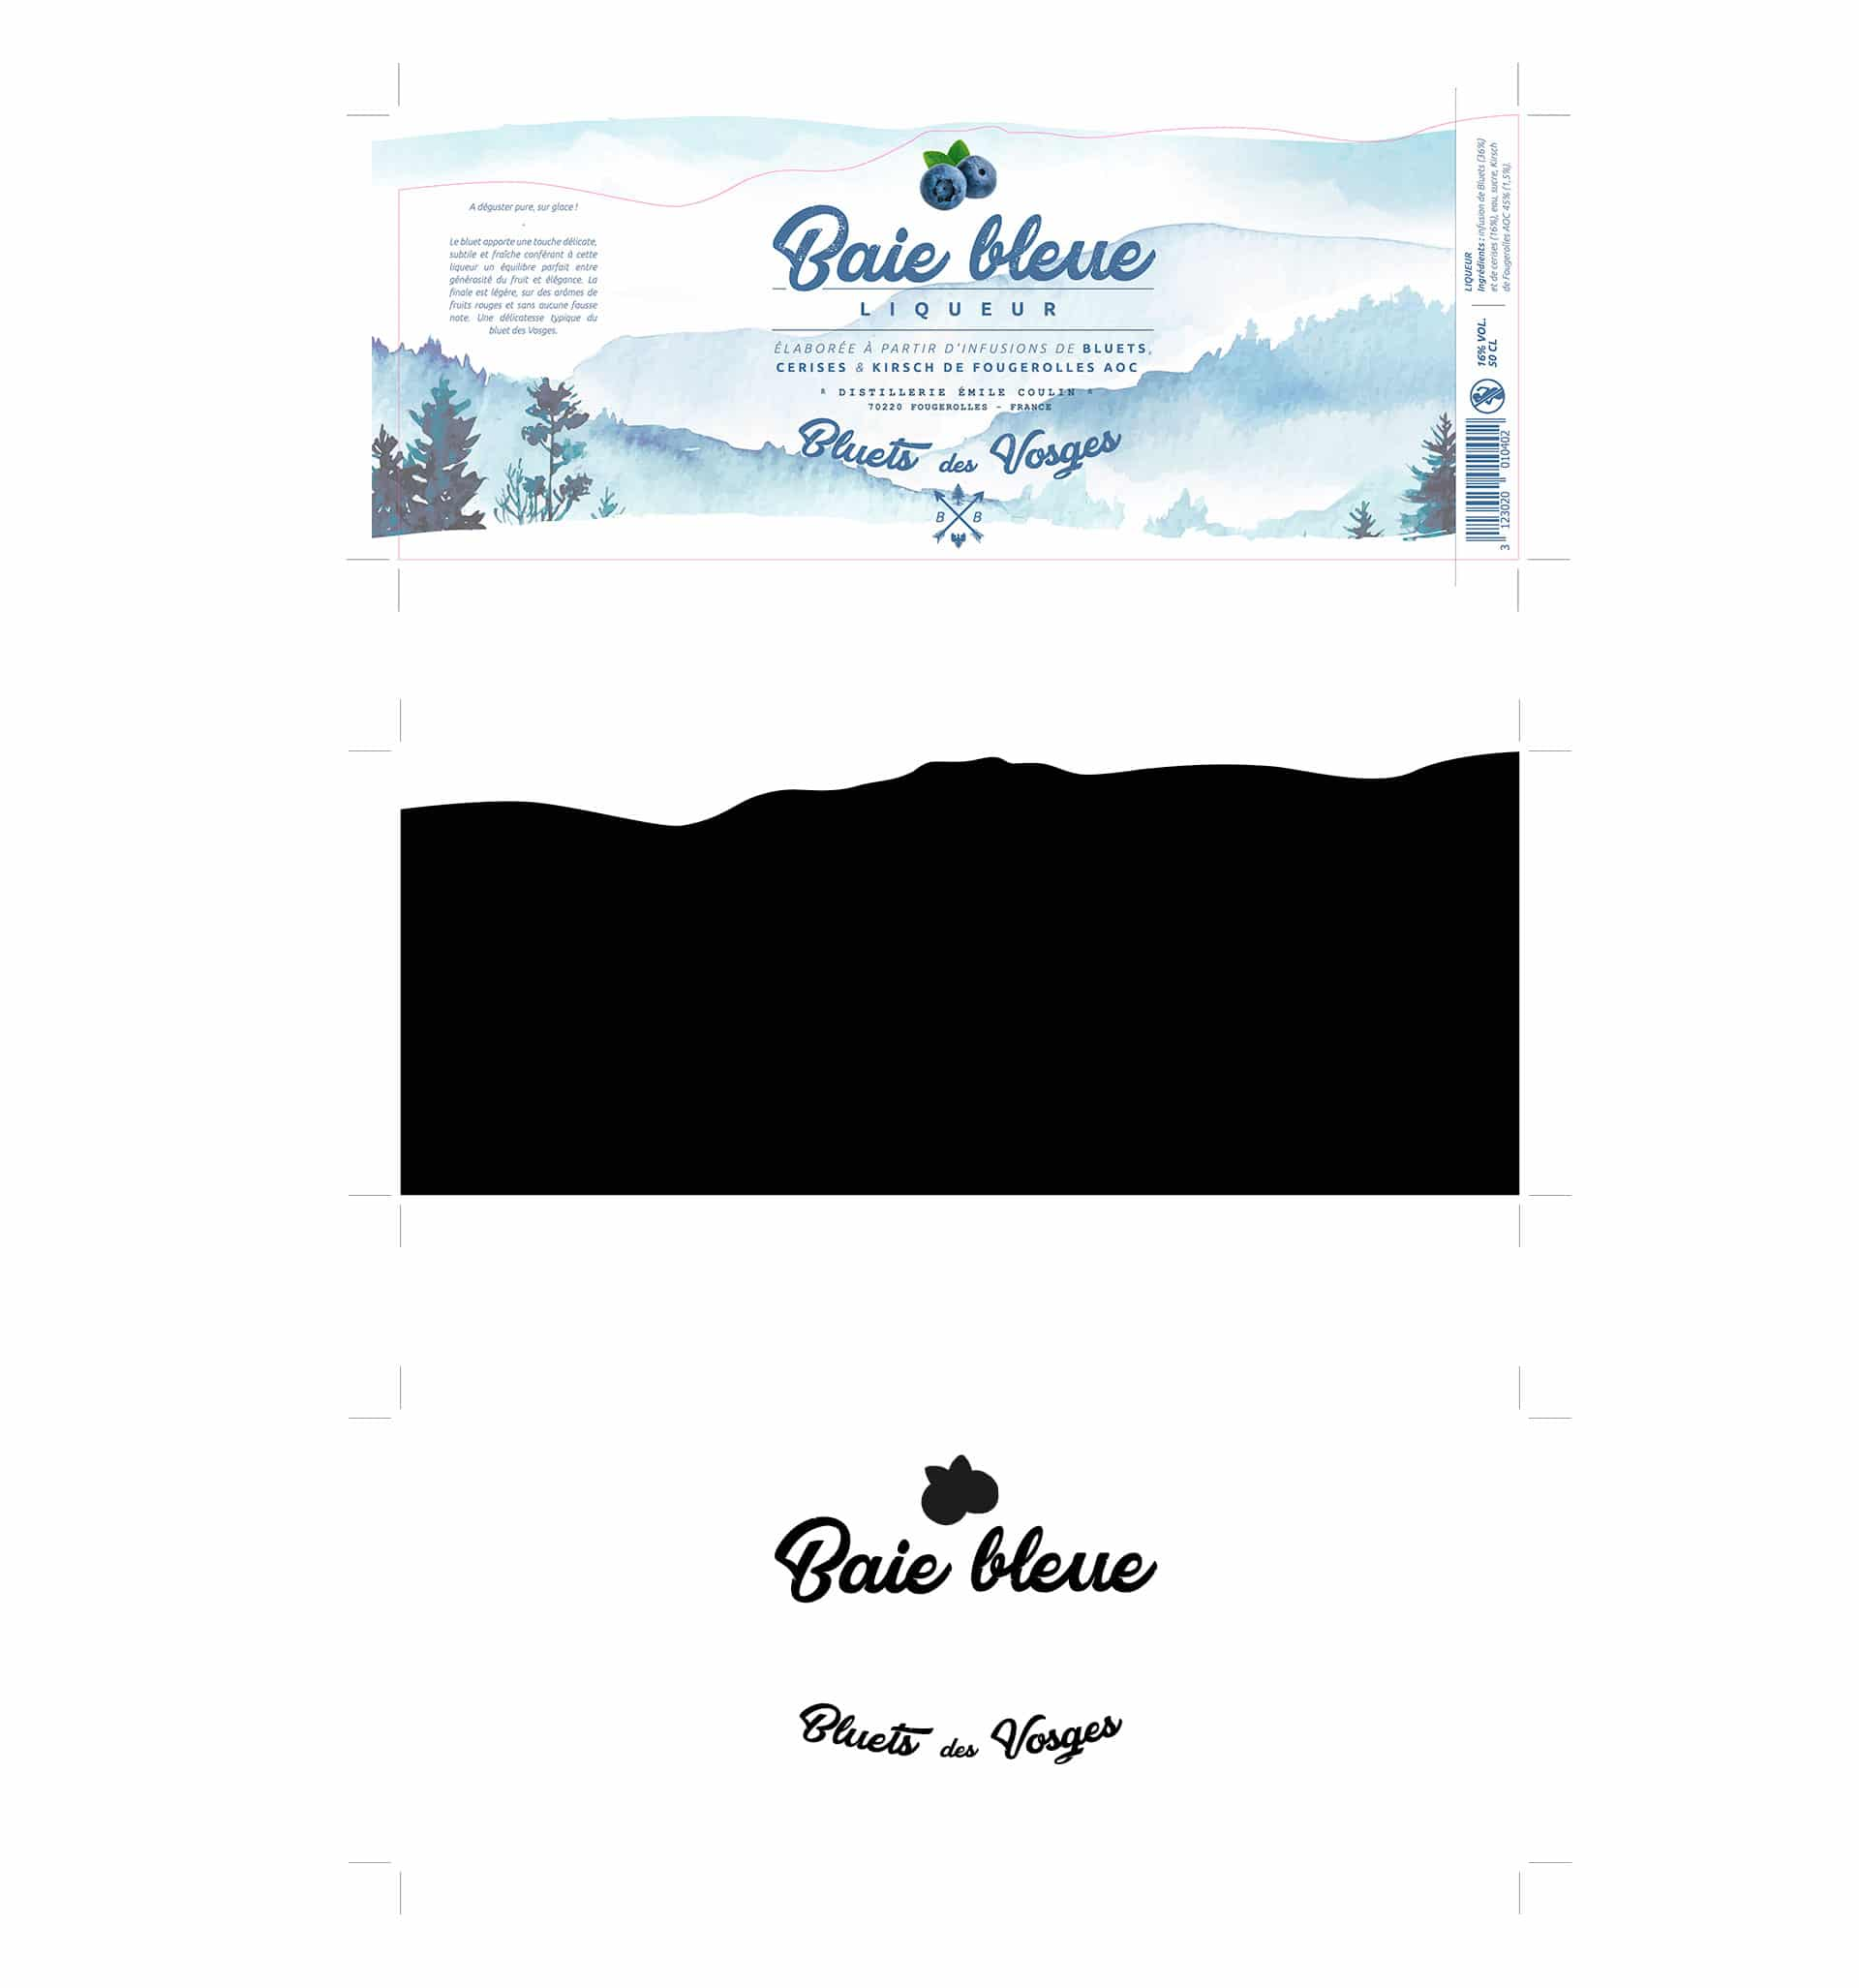 Redesign of the Blue Bay label